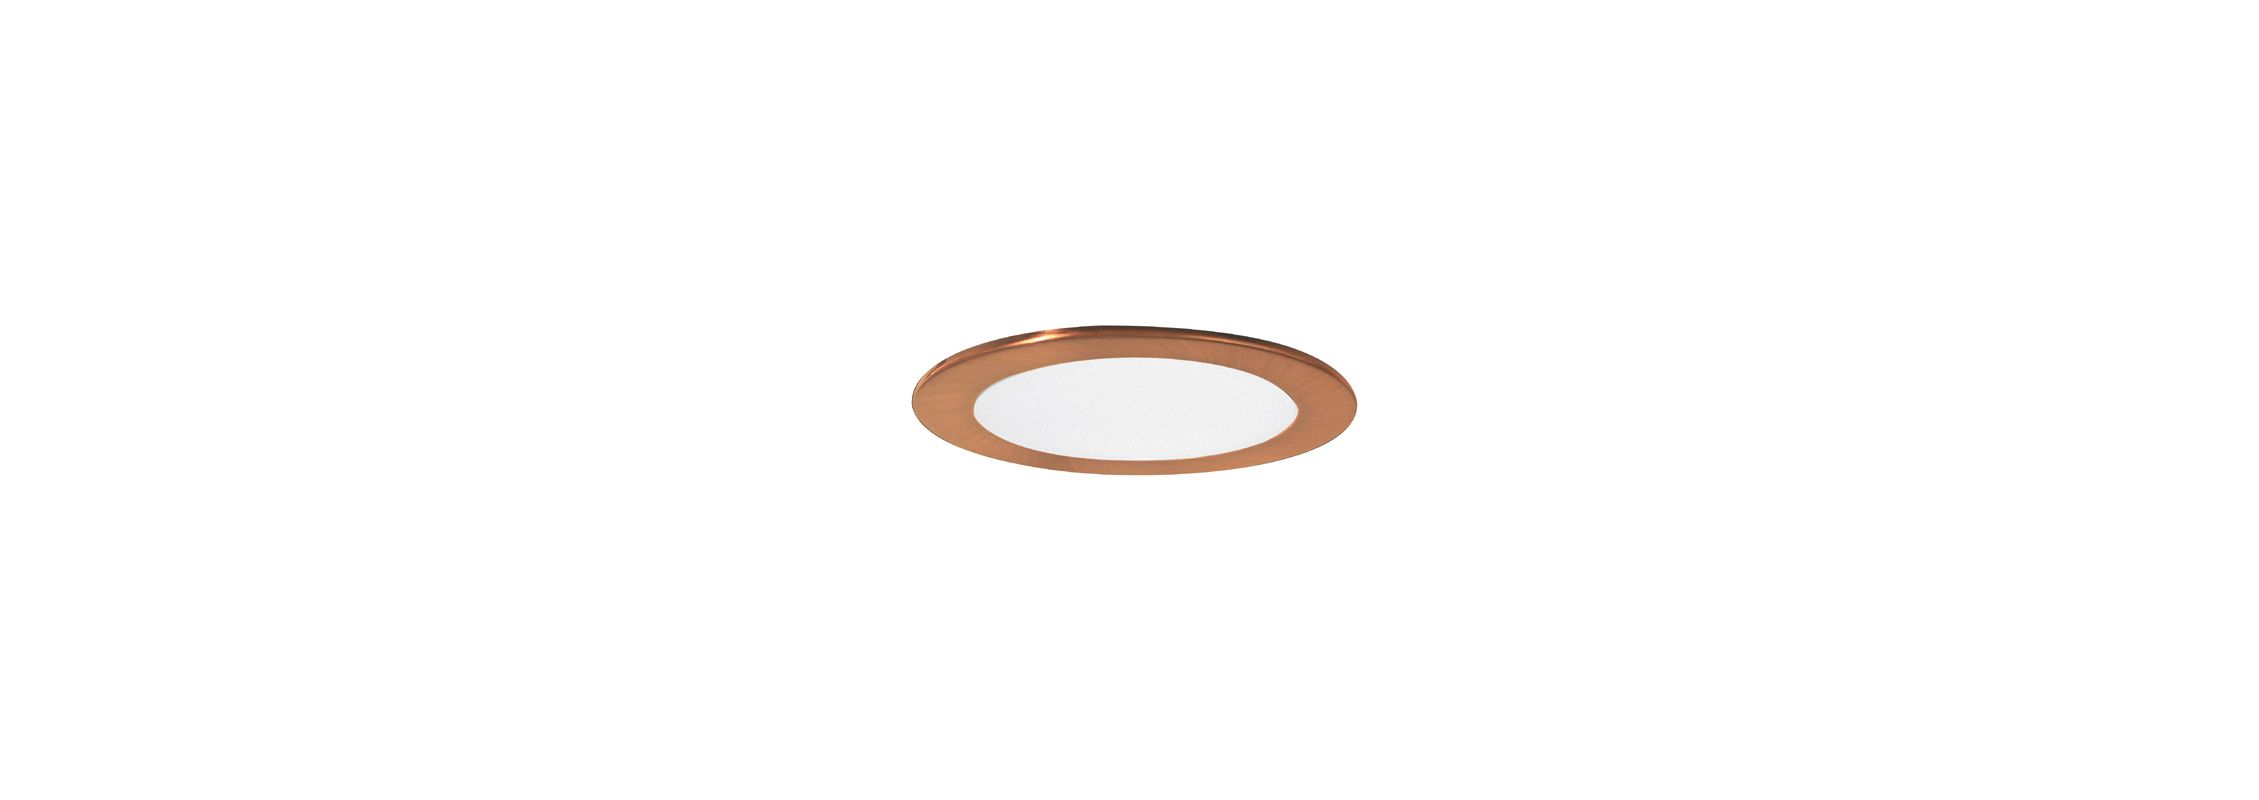 "Elco EL914 4"" Shower Trim with Albalite Lens Copper Recessed Lights"